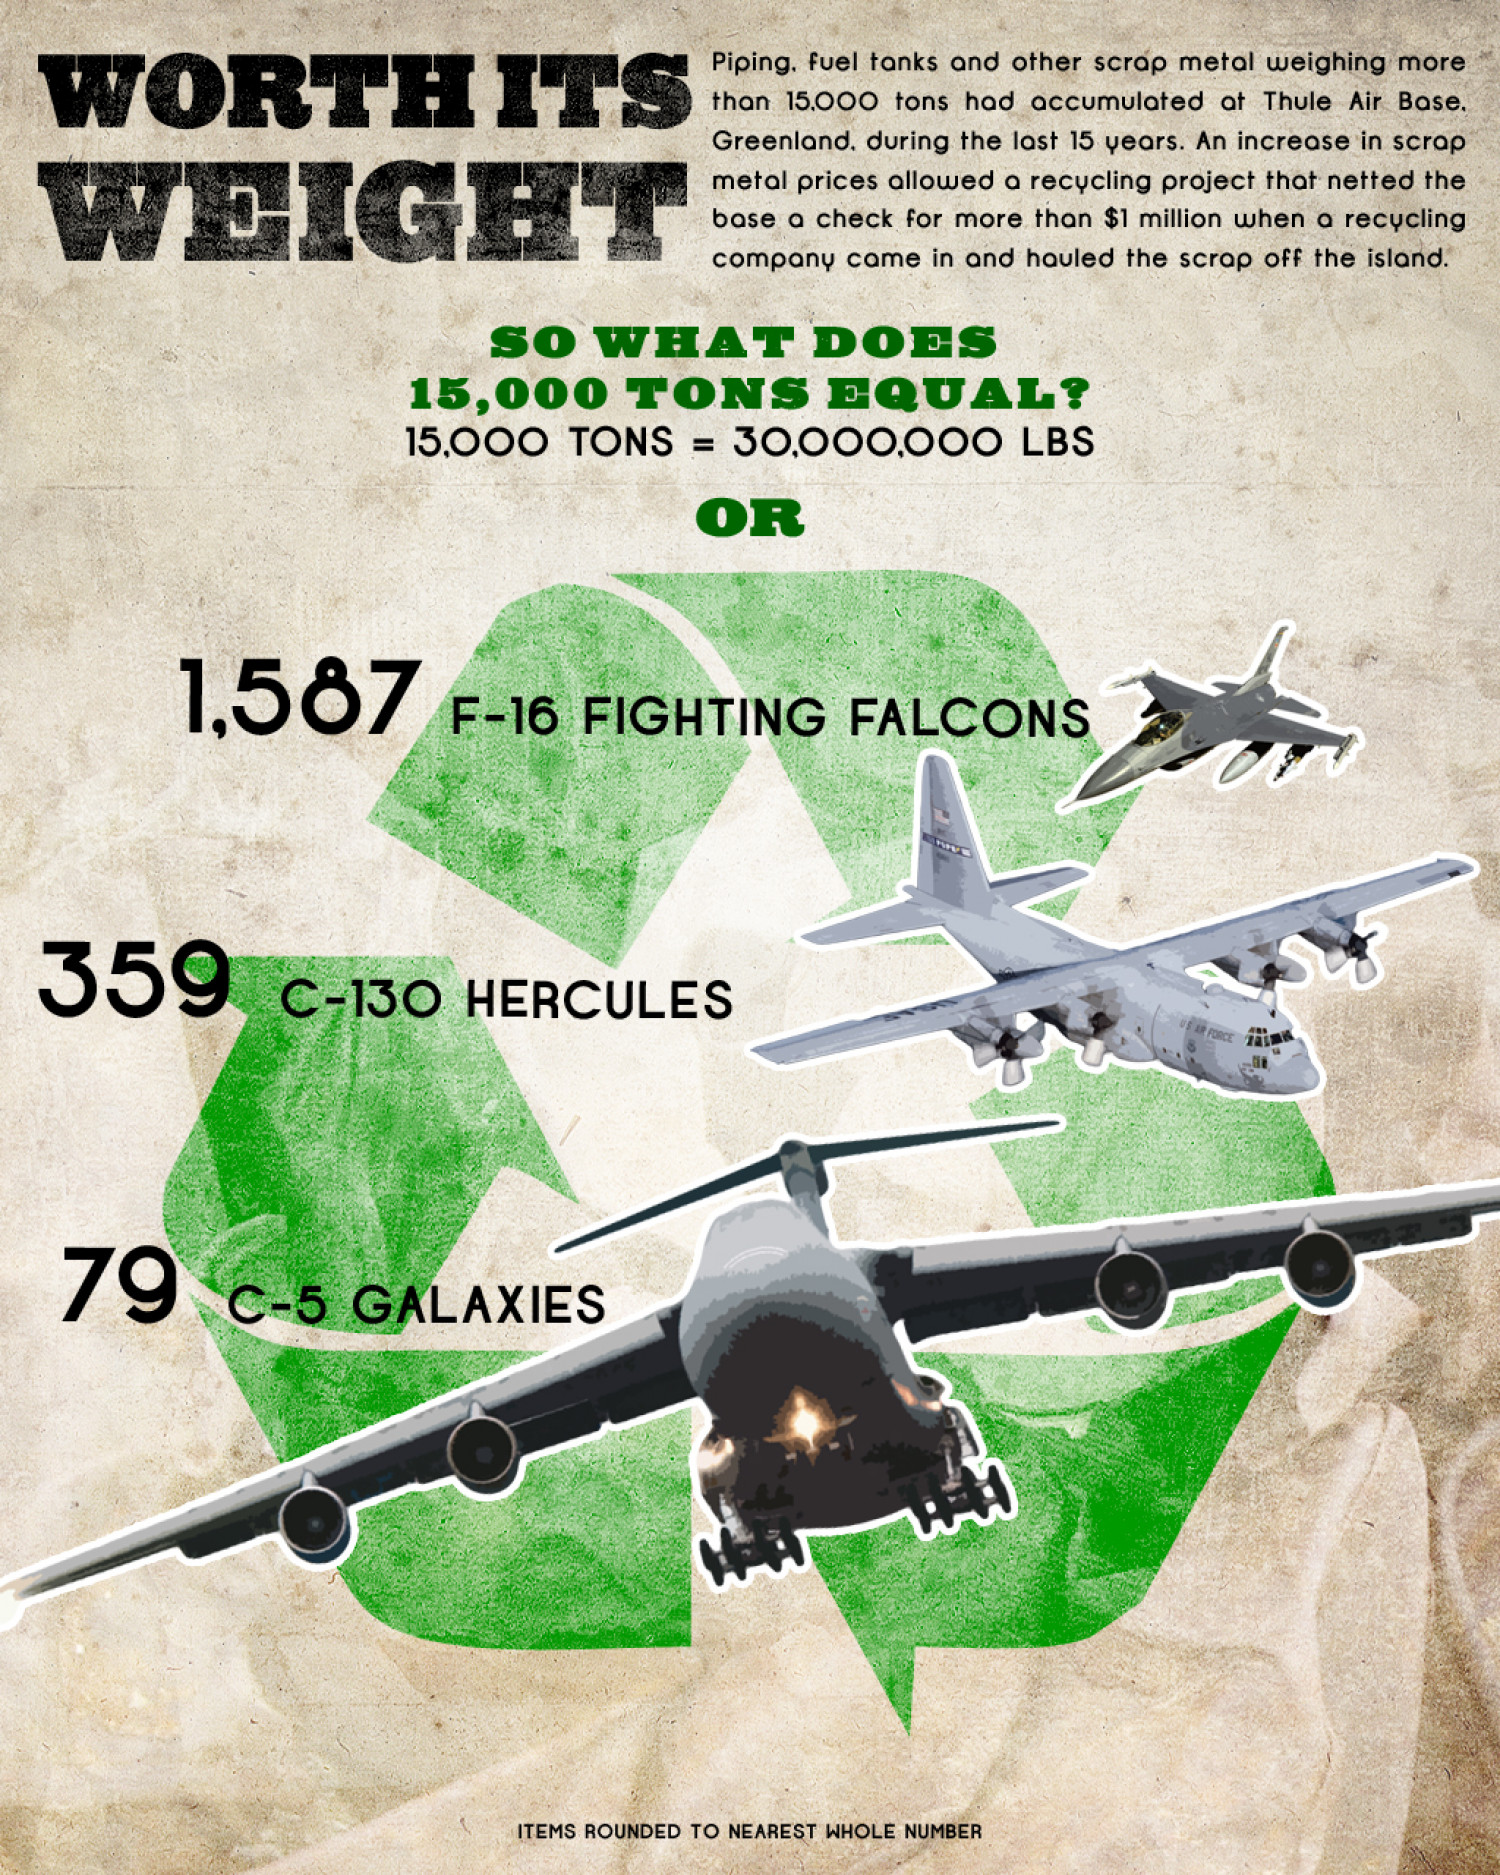 Thule AB officials turn 15K tons of scrap metal into $1M Infographic